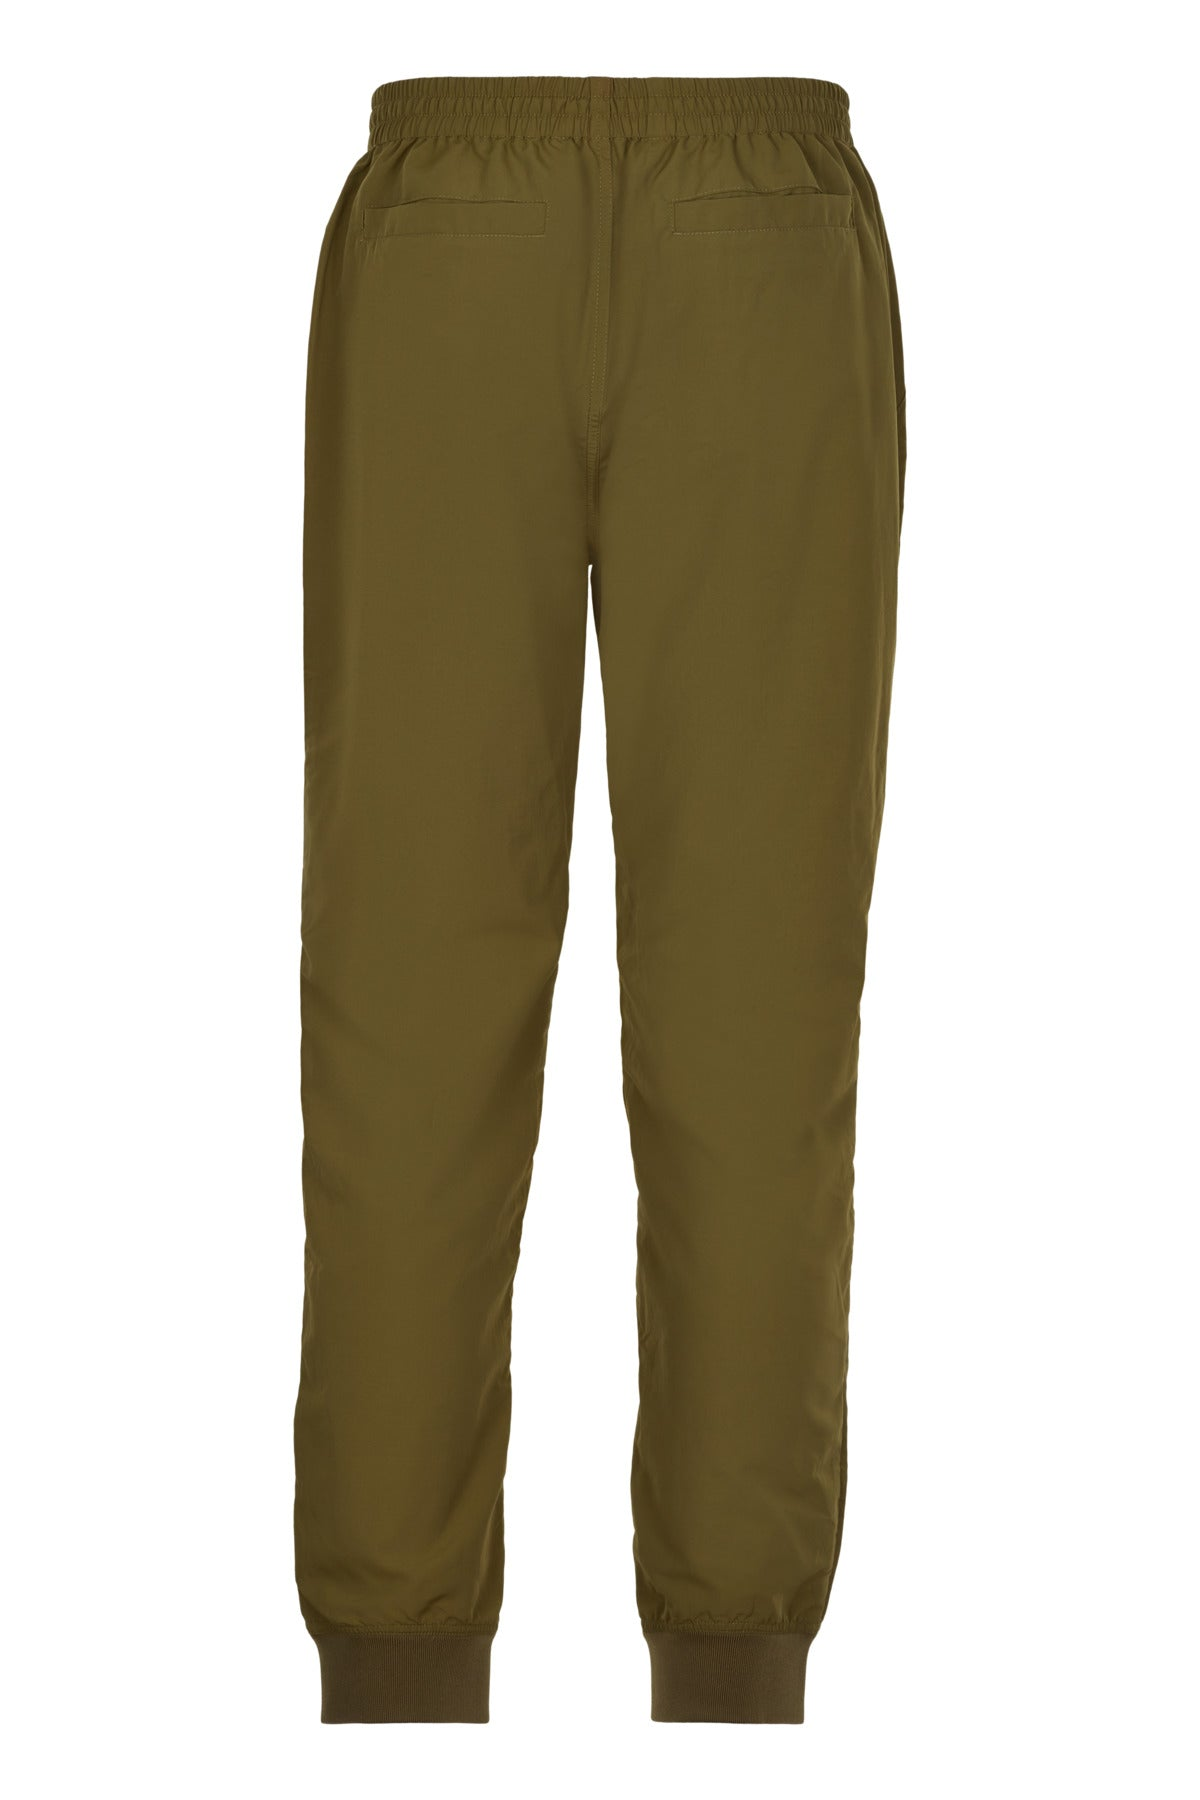 HALO NYLON PANTS - NUTRIA